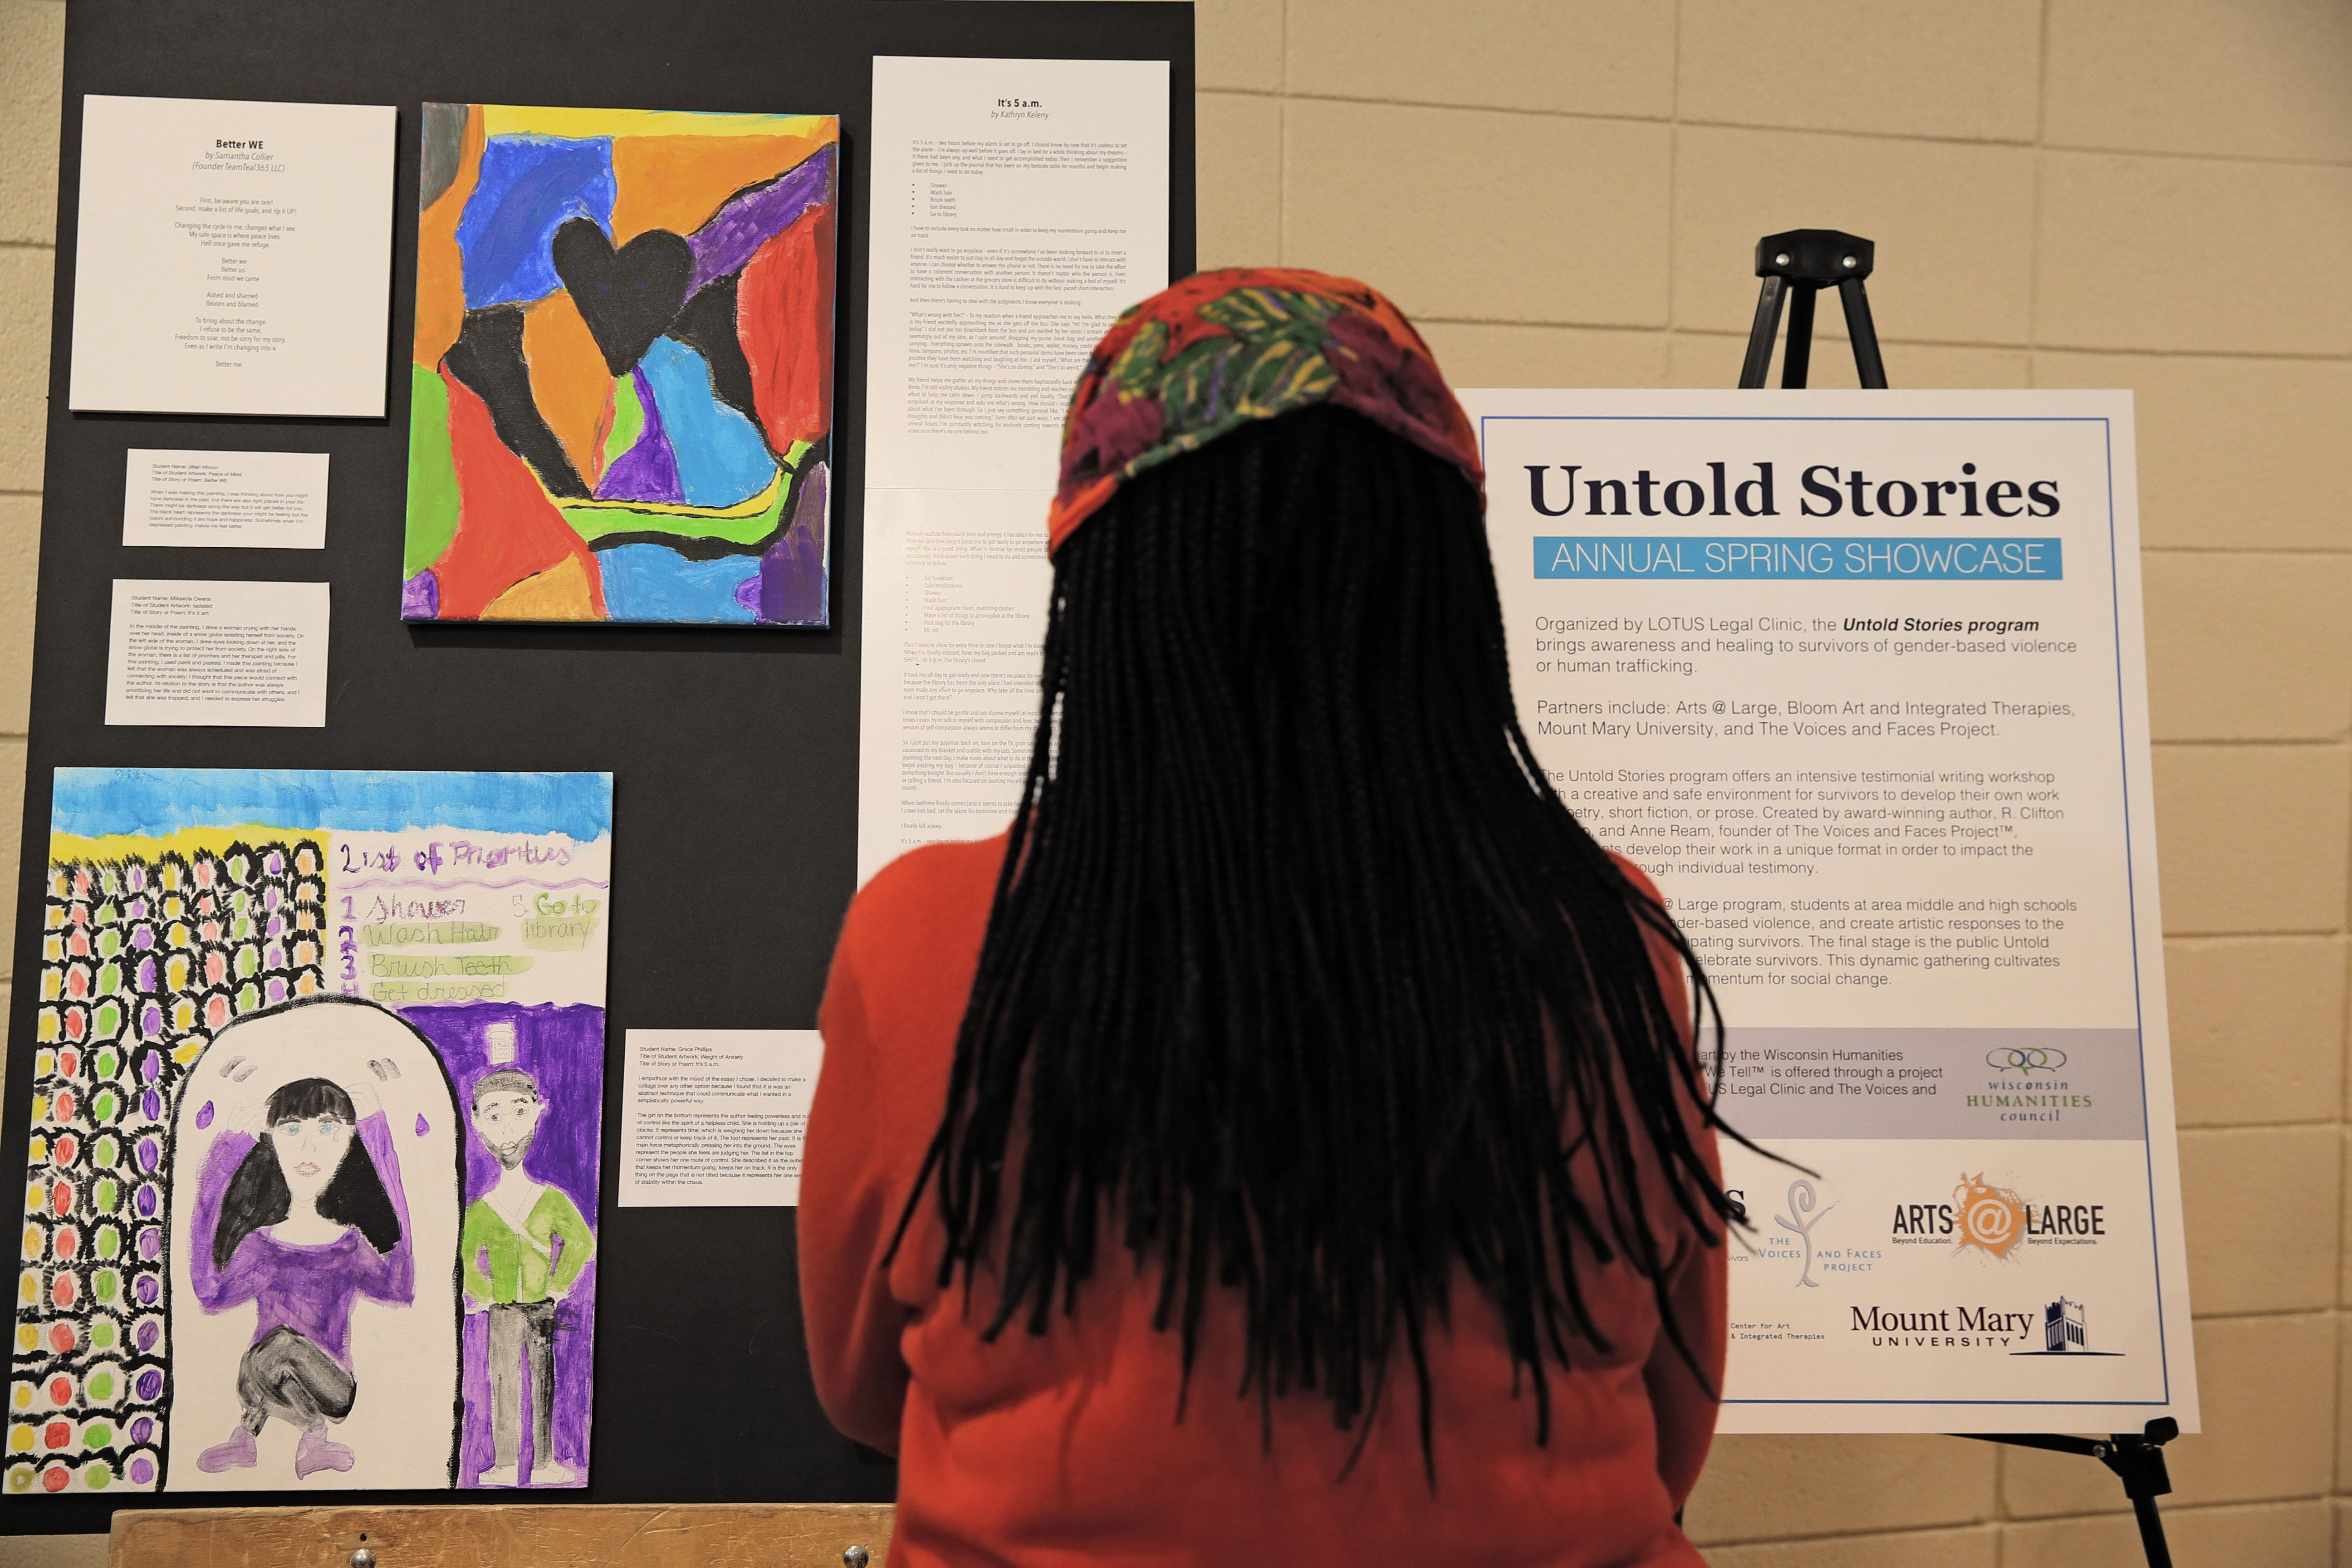 'Empowering': Milwaukee high school students create art inspired by sexual abuse survivors in Untold Stories   Milwaukee Journal Sentinel